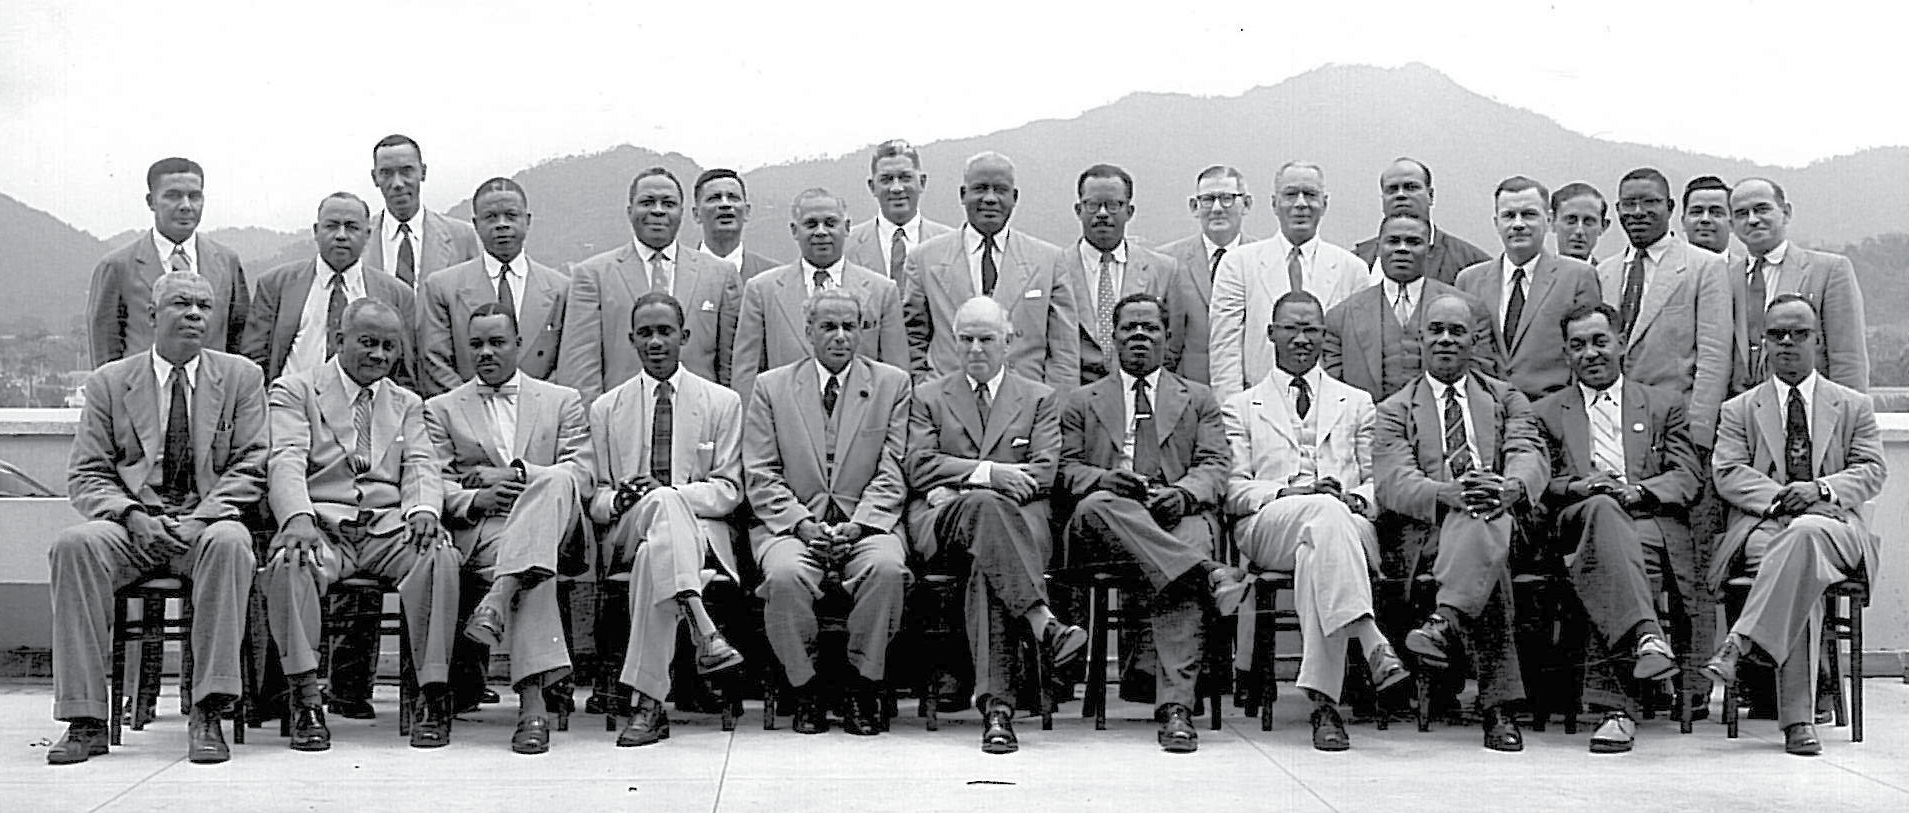 west indies federation Yesterday marked 38 years since the treaty of chaguaramas was signed into being thus forming the next attempt to integration of the west indies back in those days the main idea was to unite the resources of the caribbean region so that progress could be maximized caribbean nations and leaders had.